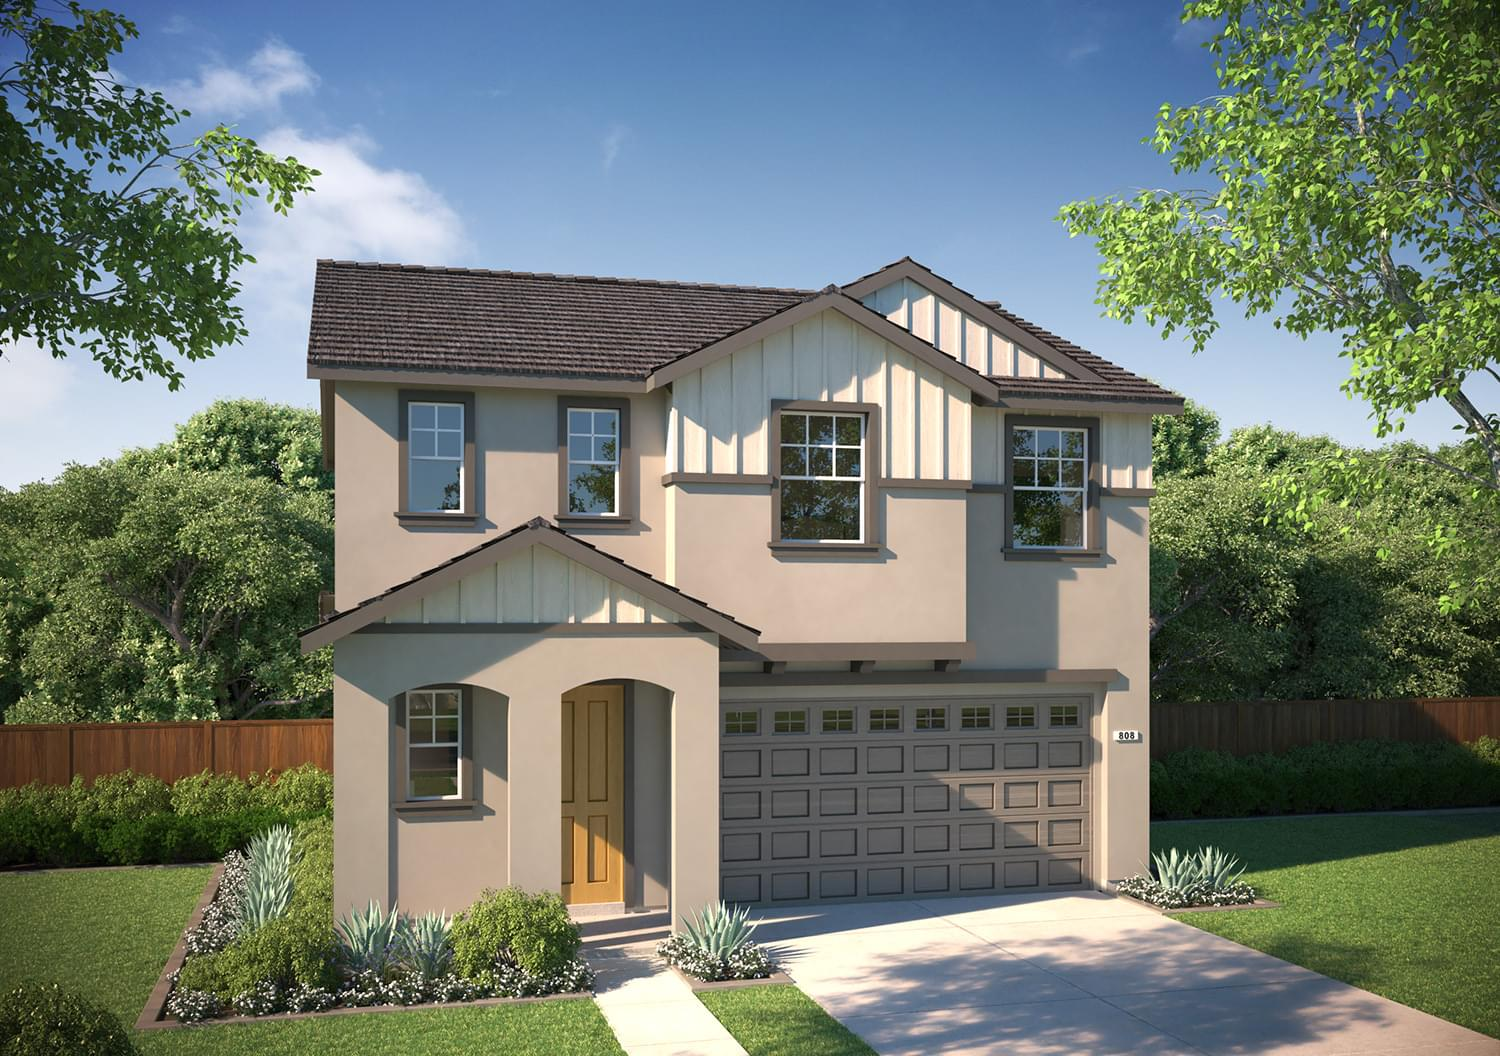 4427 Tahiti Drive in Fairfield , CA by DeNova Homes